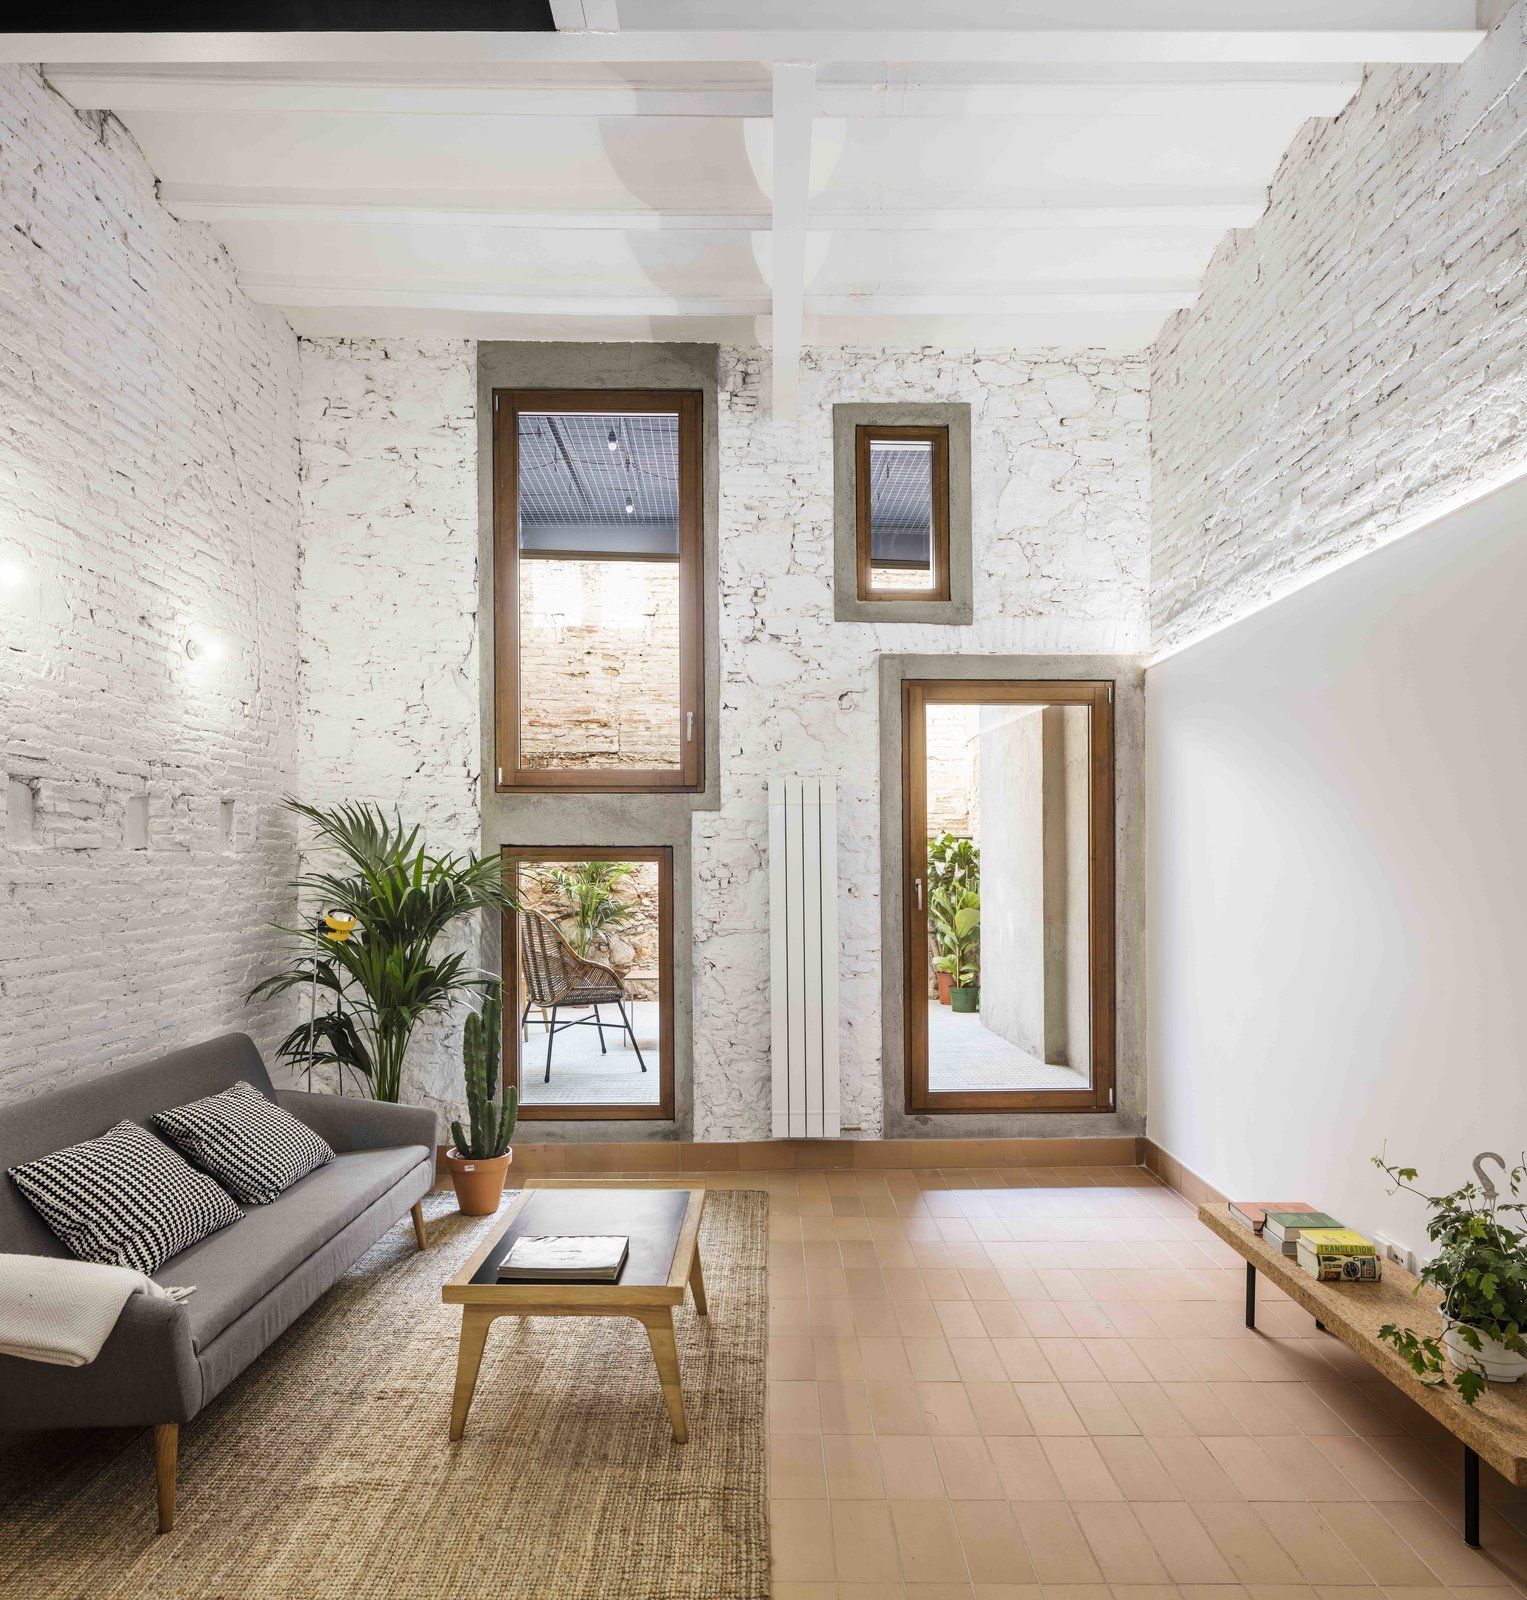 Living Room, Coffee Tables, Sofa, Bench, and Wall Lighting  Photo 10 of 13 in This Double-Height Apartment in   Barcelona Features Historic Details and a Floating Staircase